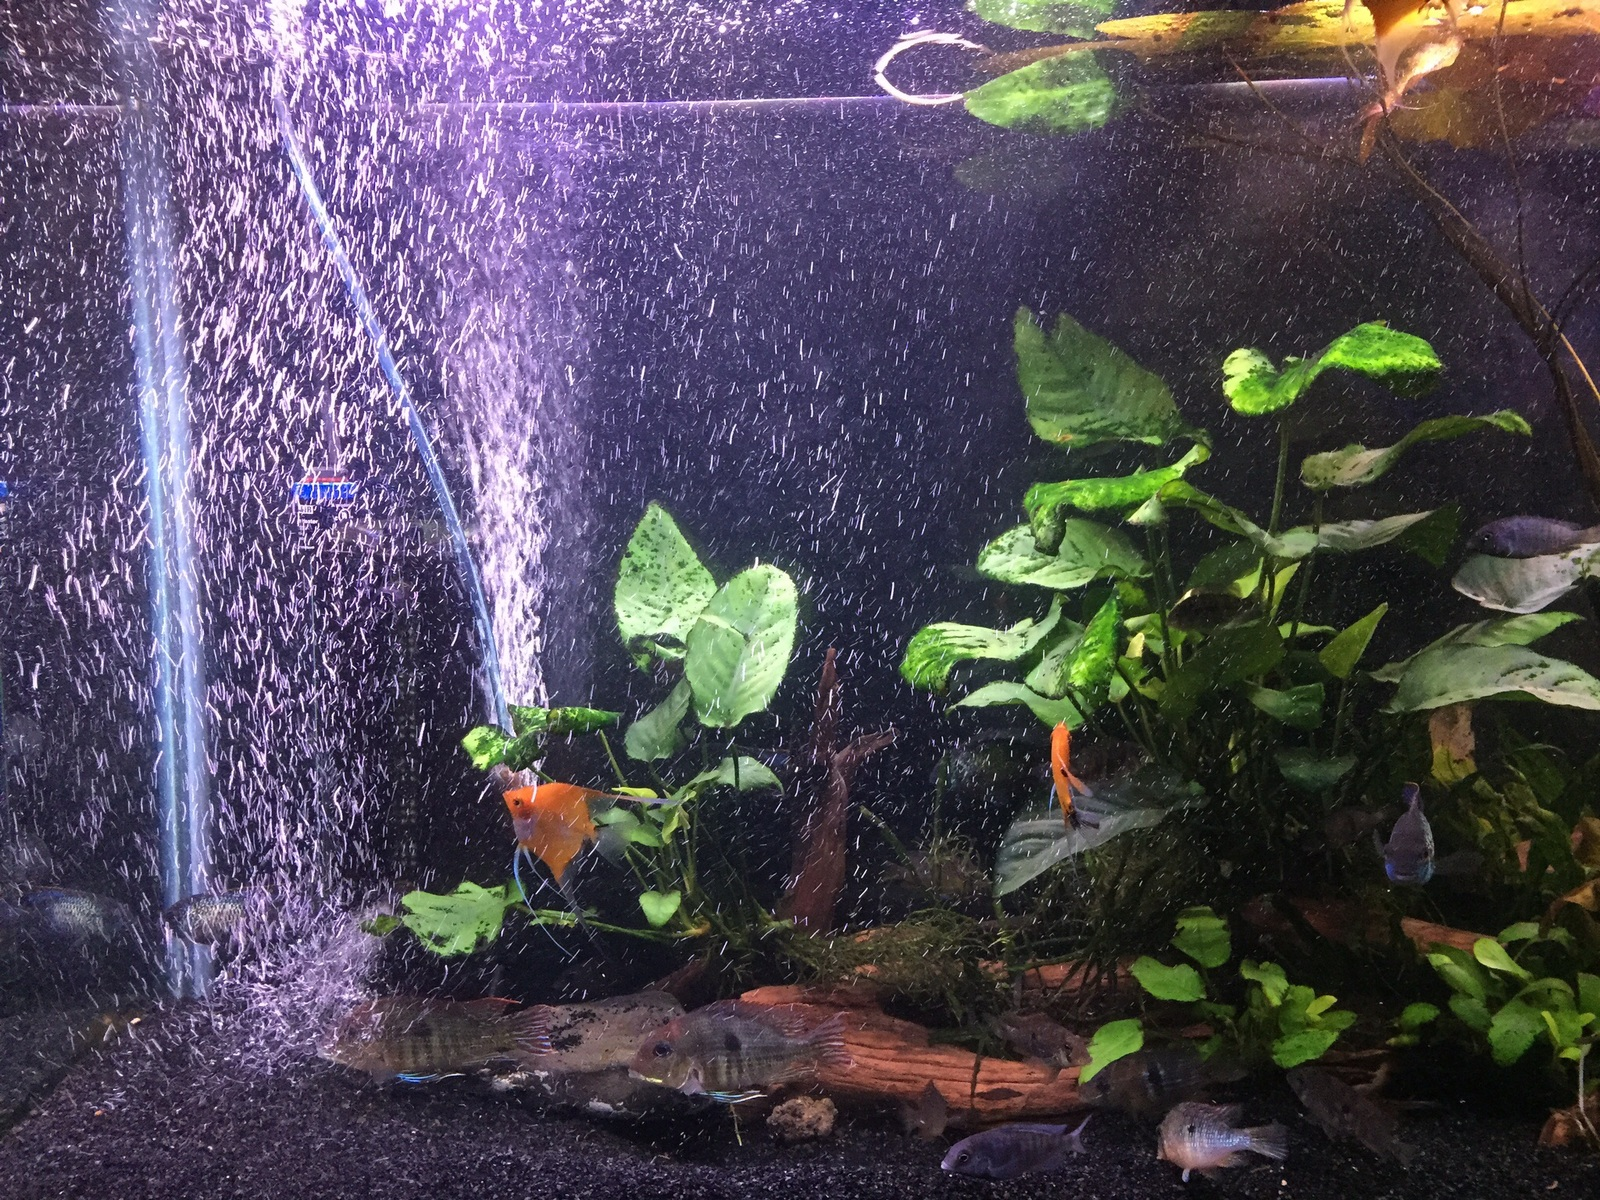 Aerating my tank | by Curtis Kurokawa